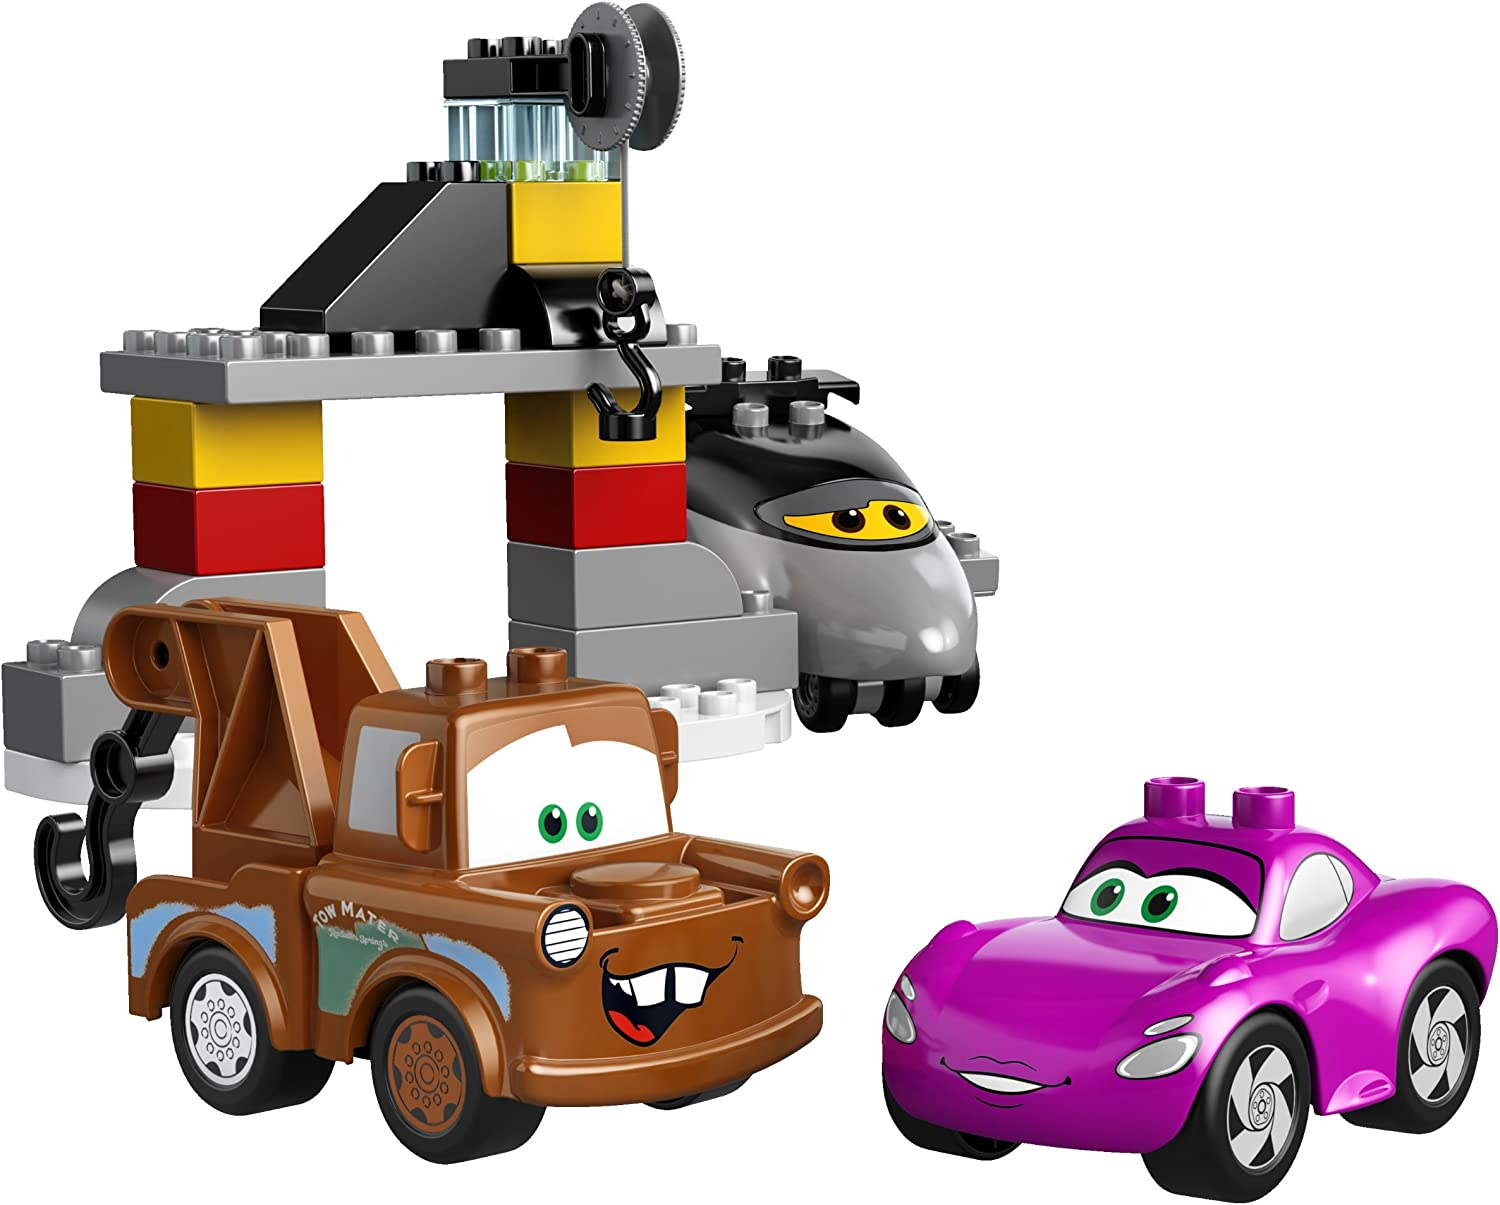 1x Lego Duplo Vehicle Truck Chassis B-Stock Chassis Neu-Dunkel Grey 1326c01